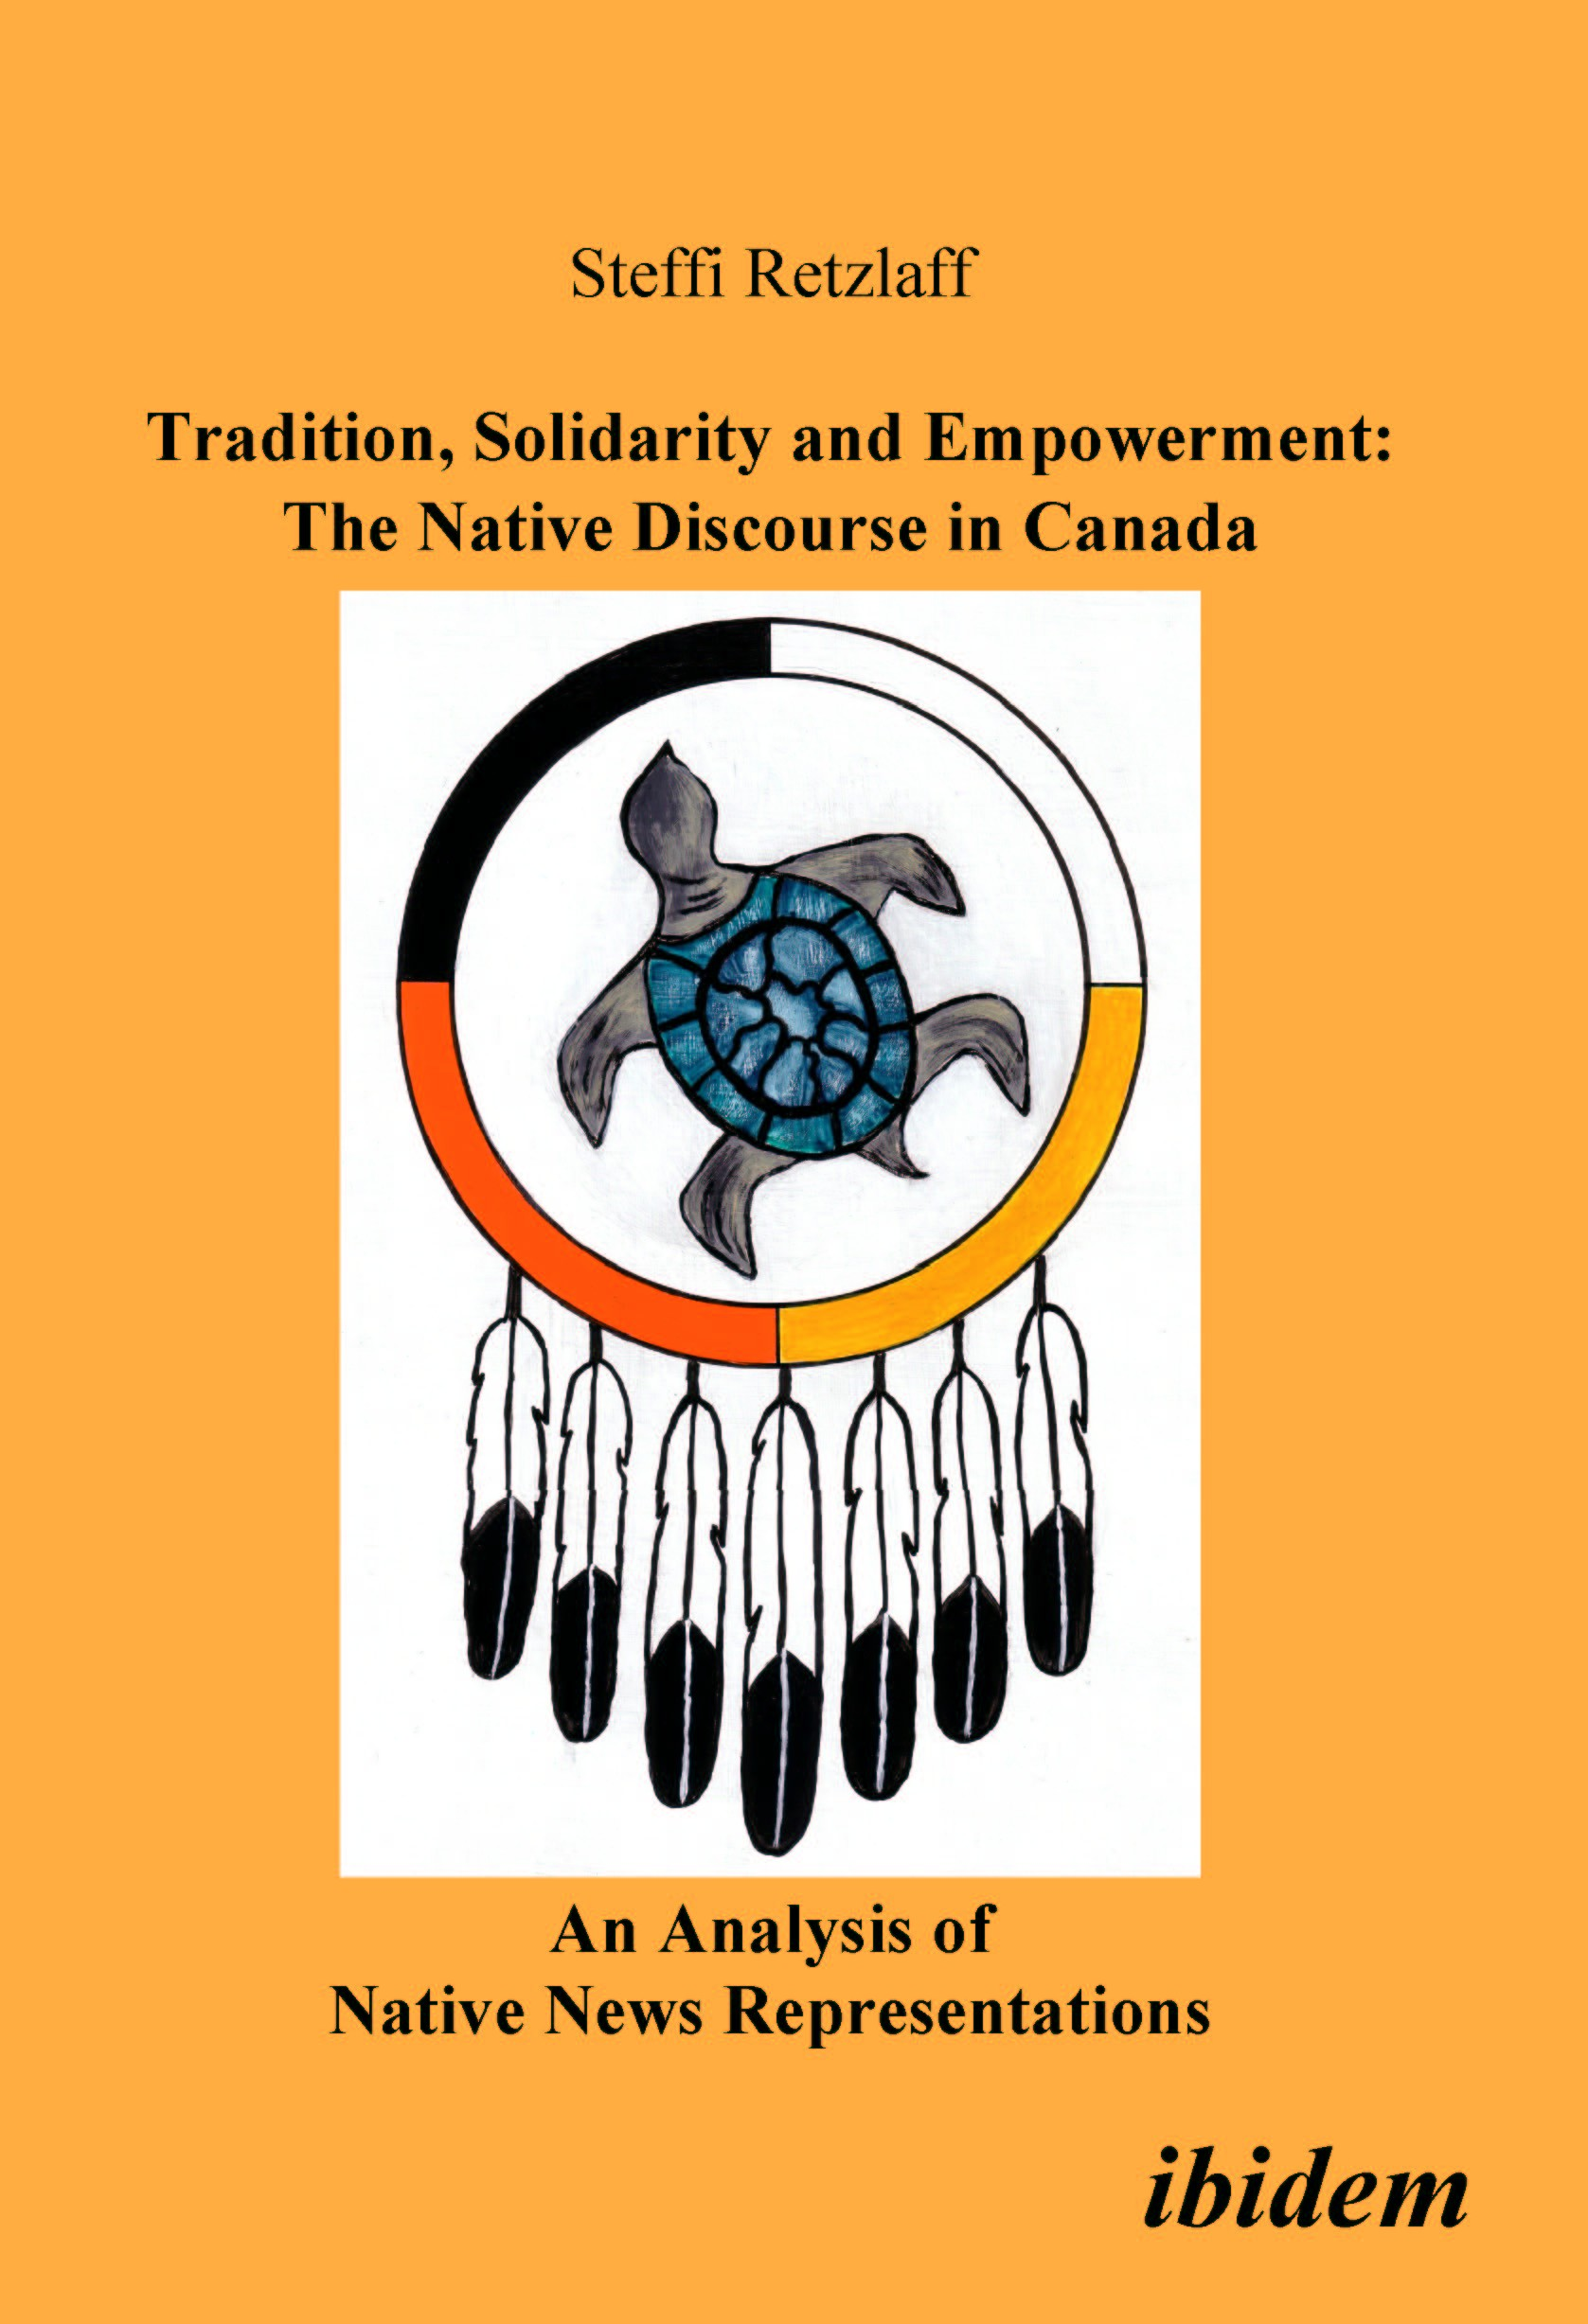 Tradition, Solidarity and Empowerment: The Native Discourse in Canada